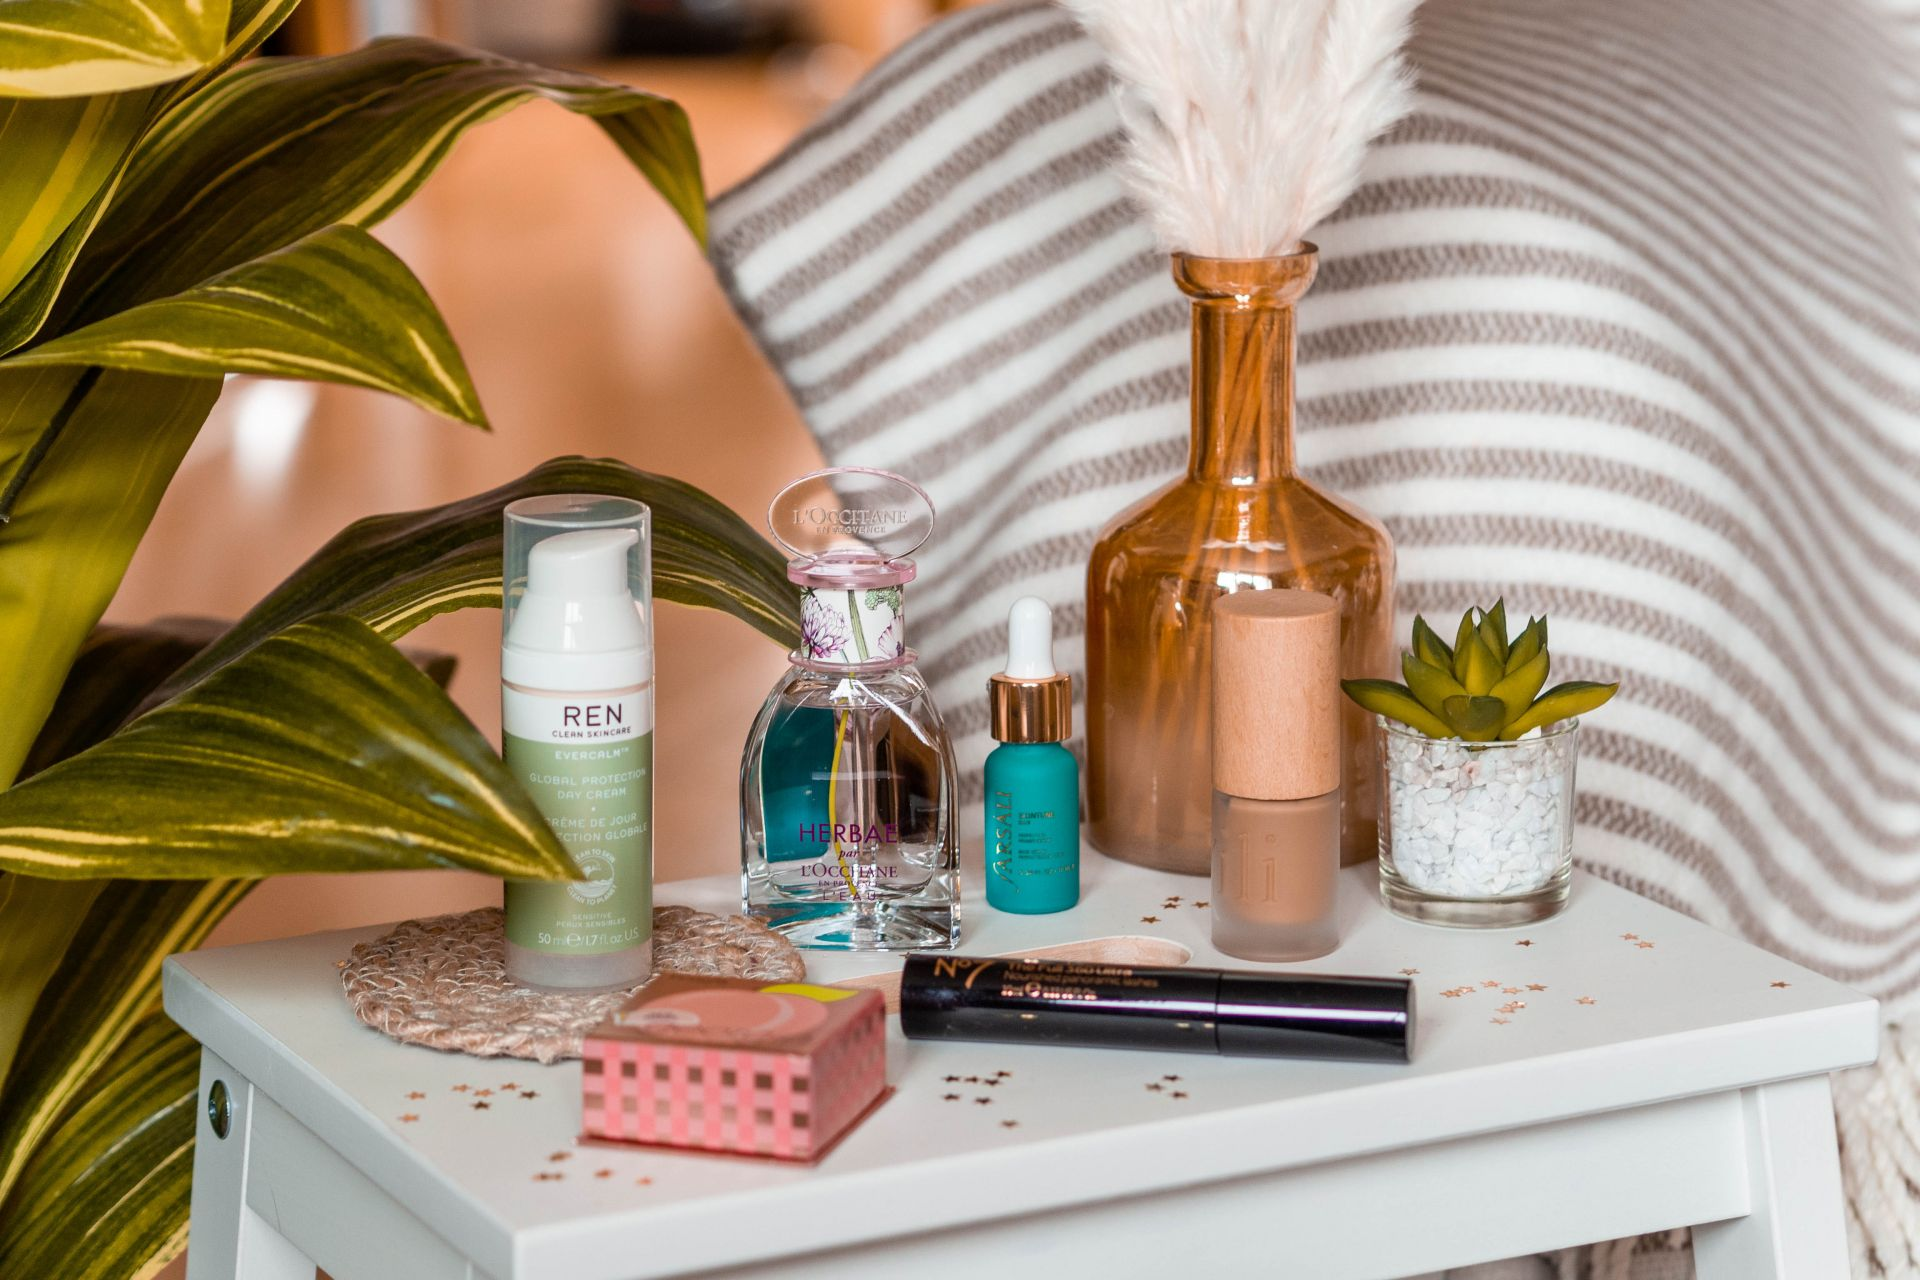 The top Spring beauty products